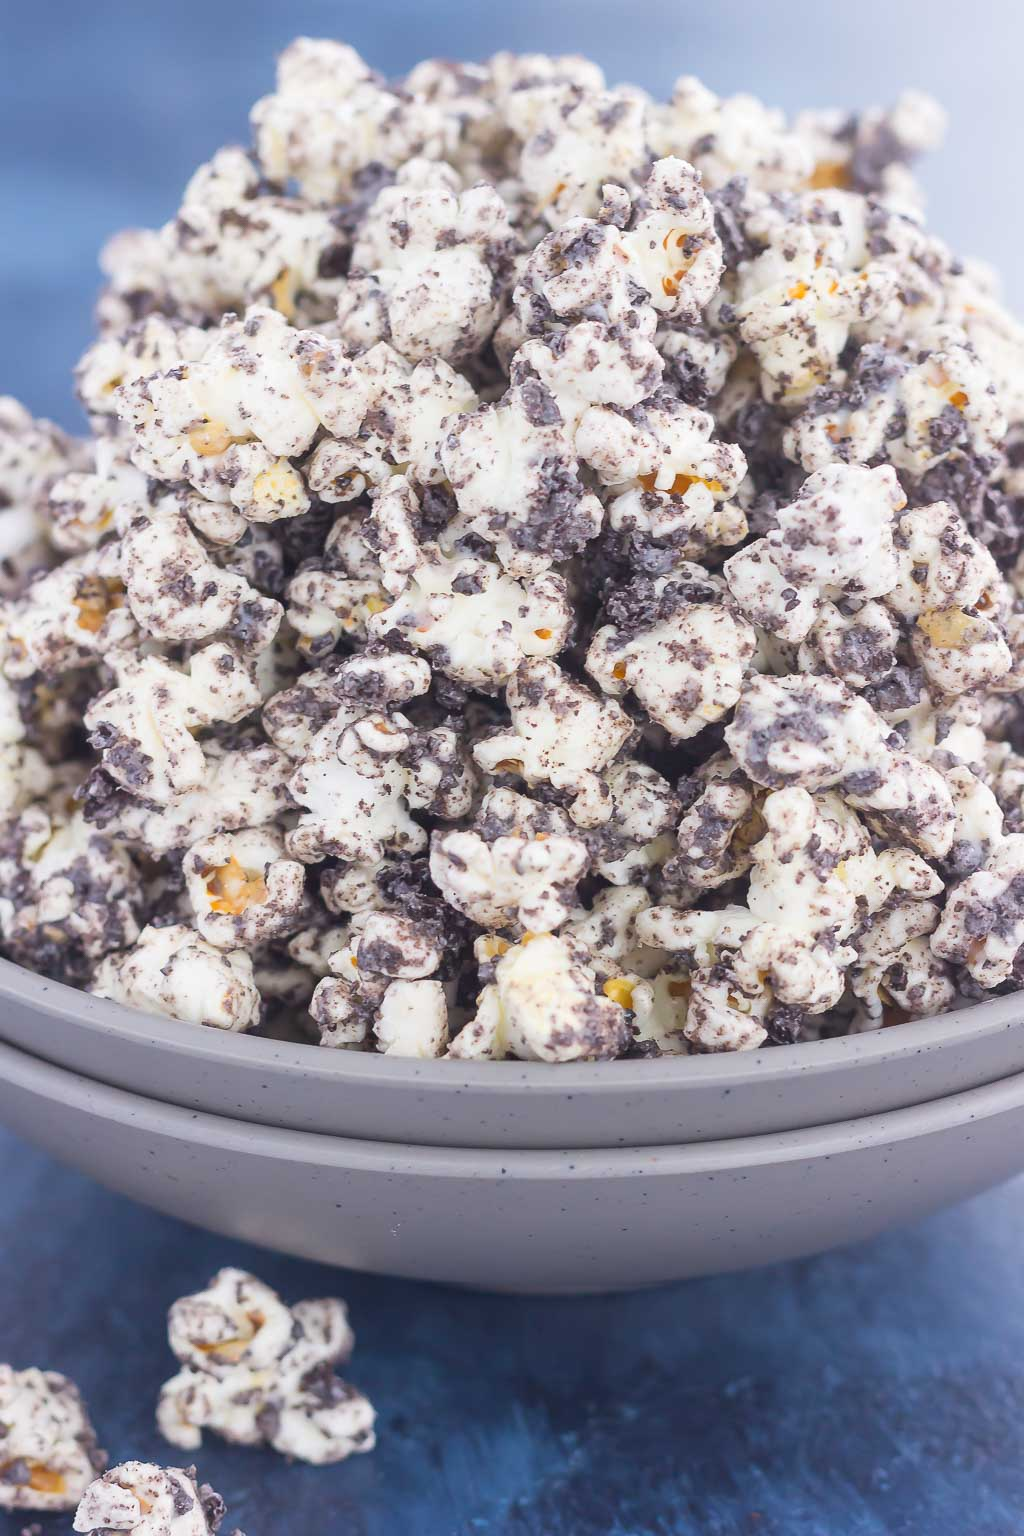 Side view of an overflowing bowl of cookies and cream popcorn.